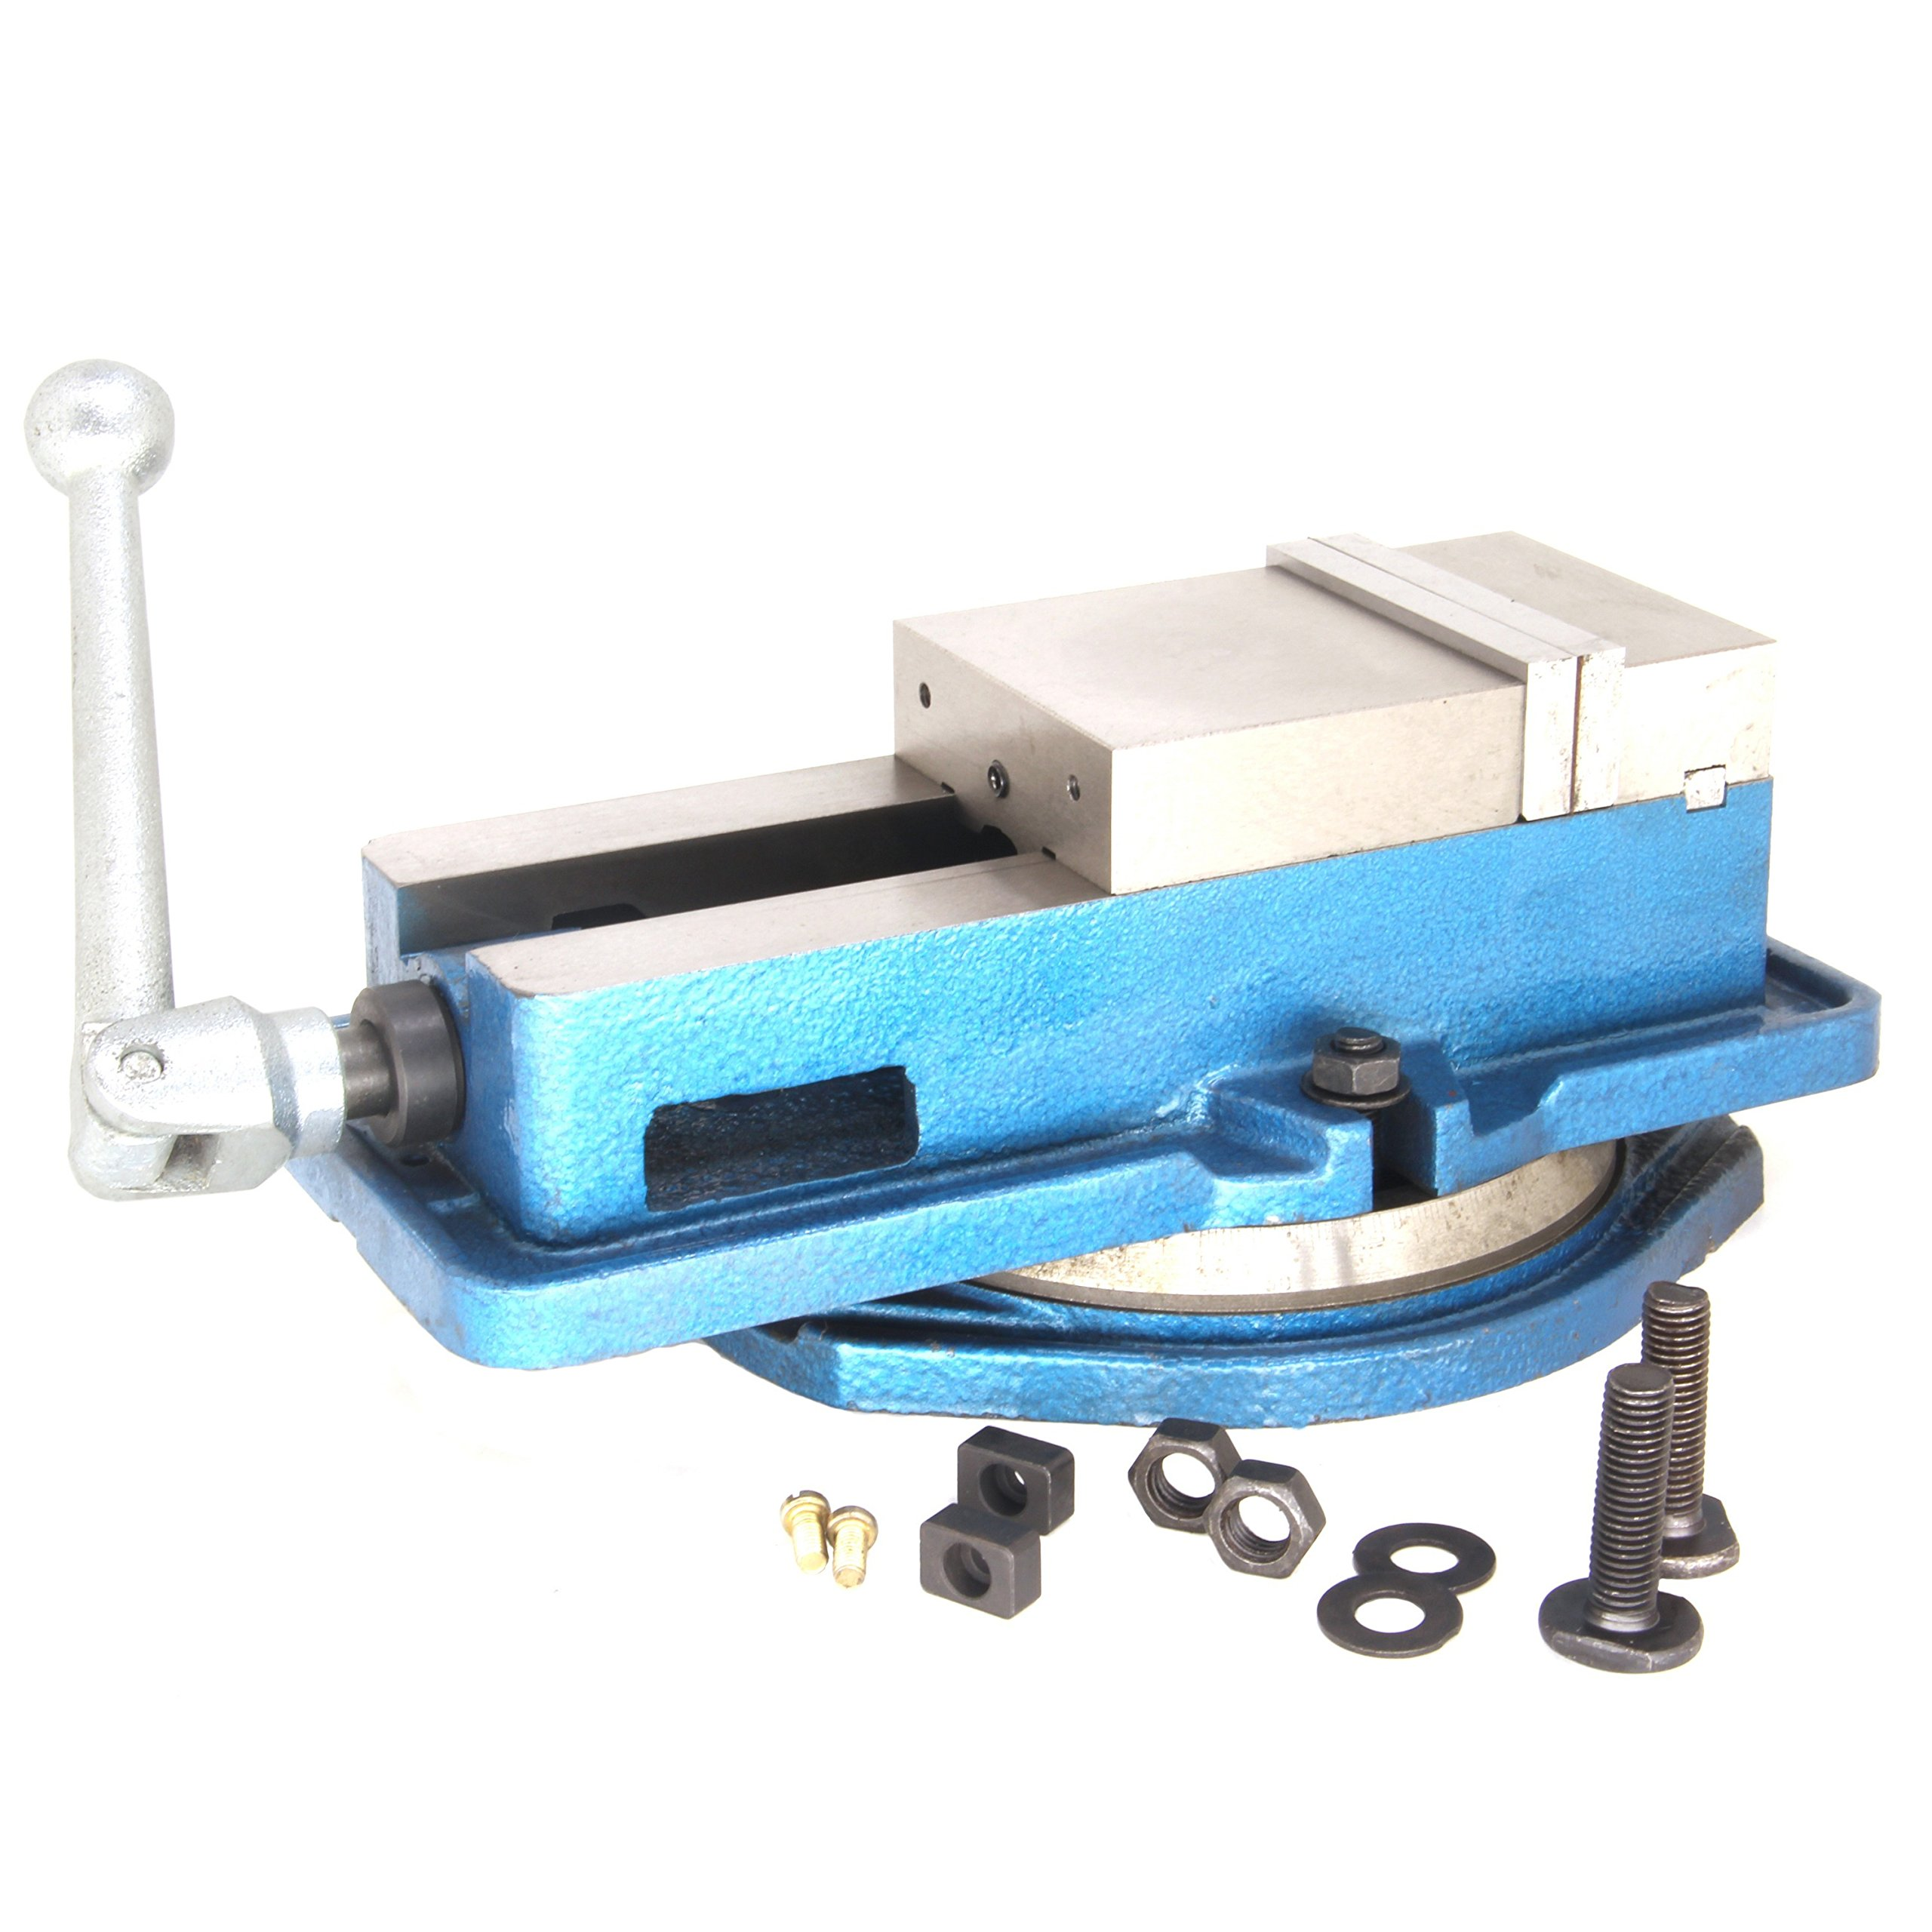 HFS (Tm) 3'' Milling Machine Lockdown Vise -Swiveling Base - Hardened Metal - CNC Vise